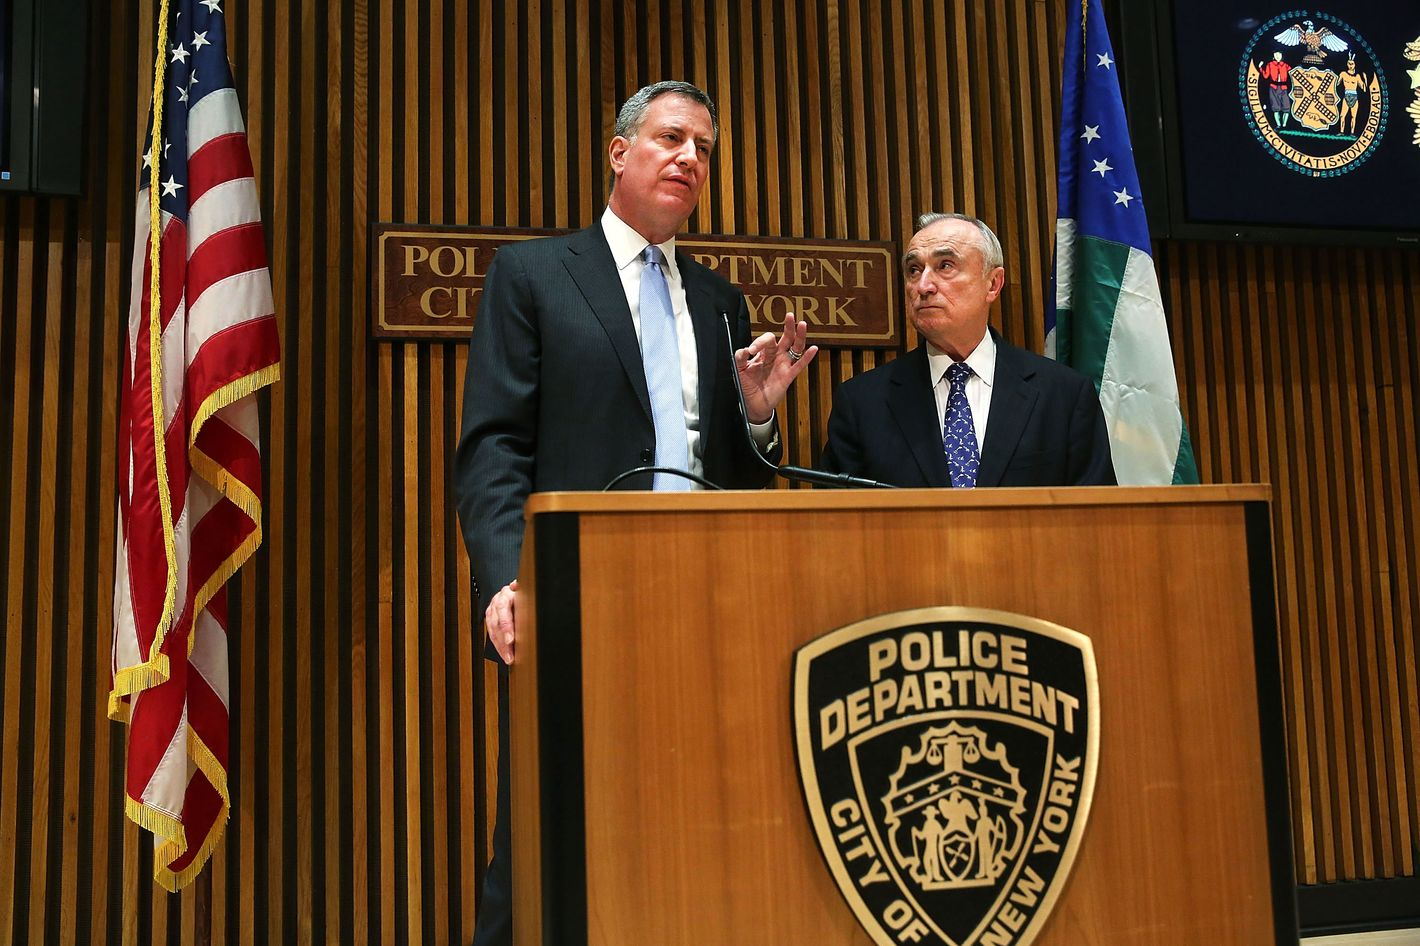 New York City Mayor Bill de Blasio (left) speaks at his first news conference with police commissioner William Bratton at One Police Plaza on January 2, 2014 in New York City. New York City, and much of New England is preparing for a major winter snowstorm.